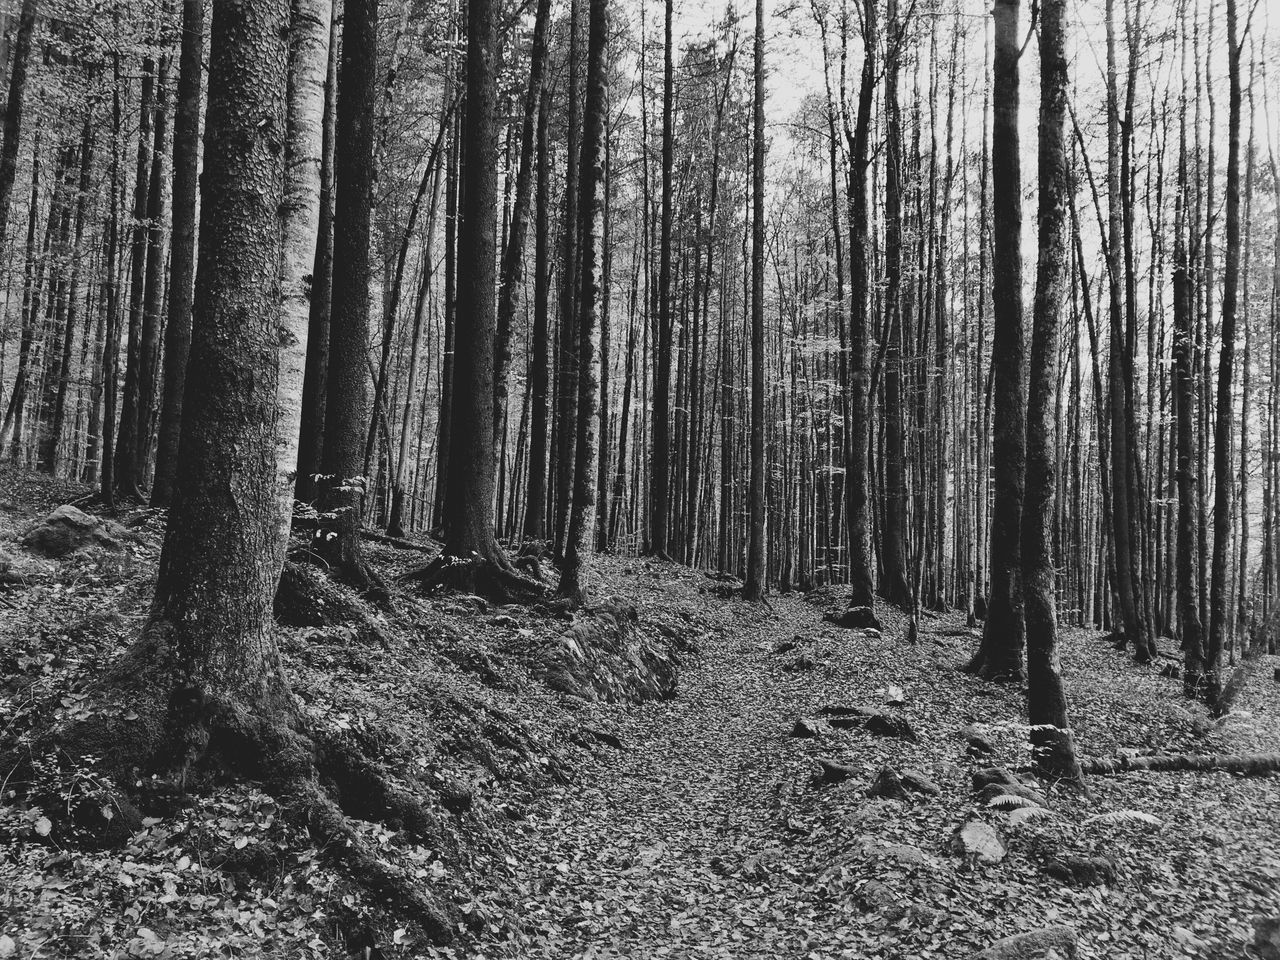 Path and trees Mexturesapp EyeEmSwiss Streamzoofamily Trees Forest Path EyeEm Nature Lover EyeEm Bnw